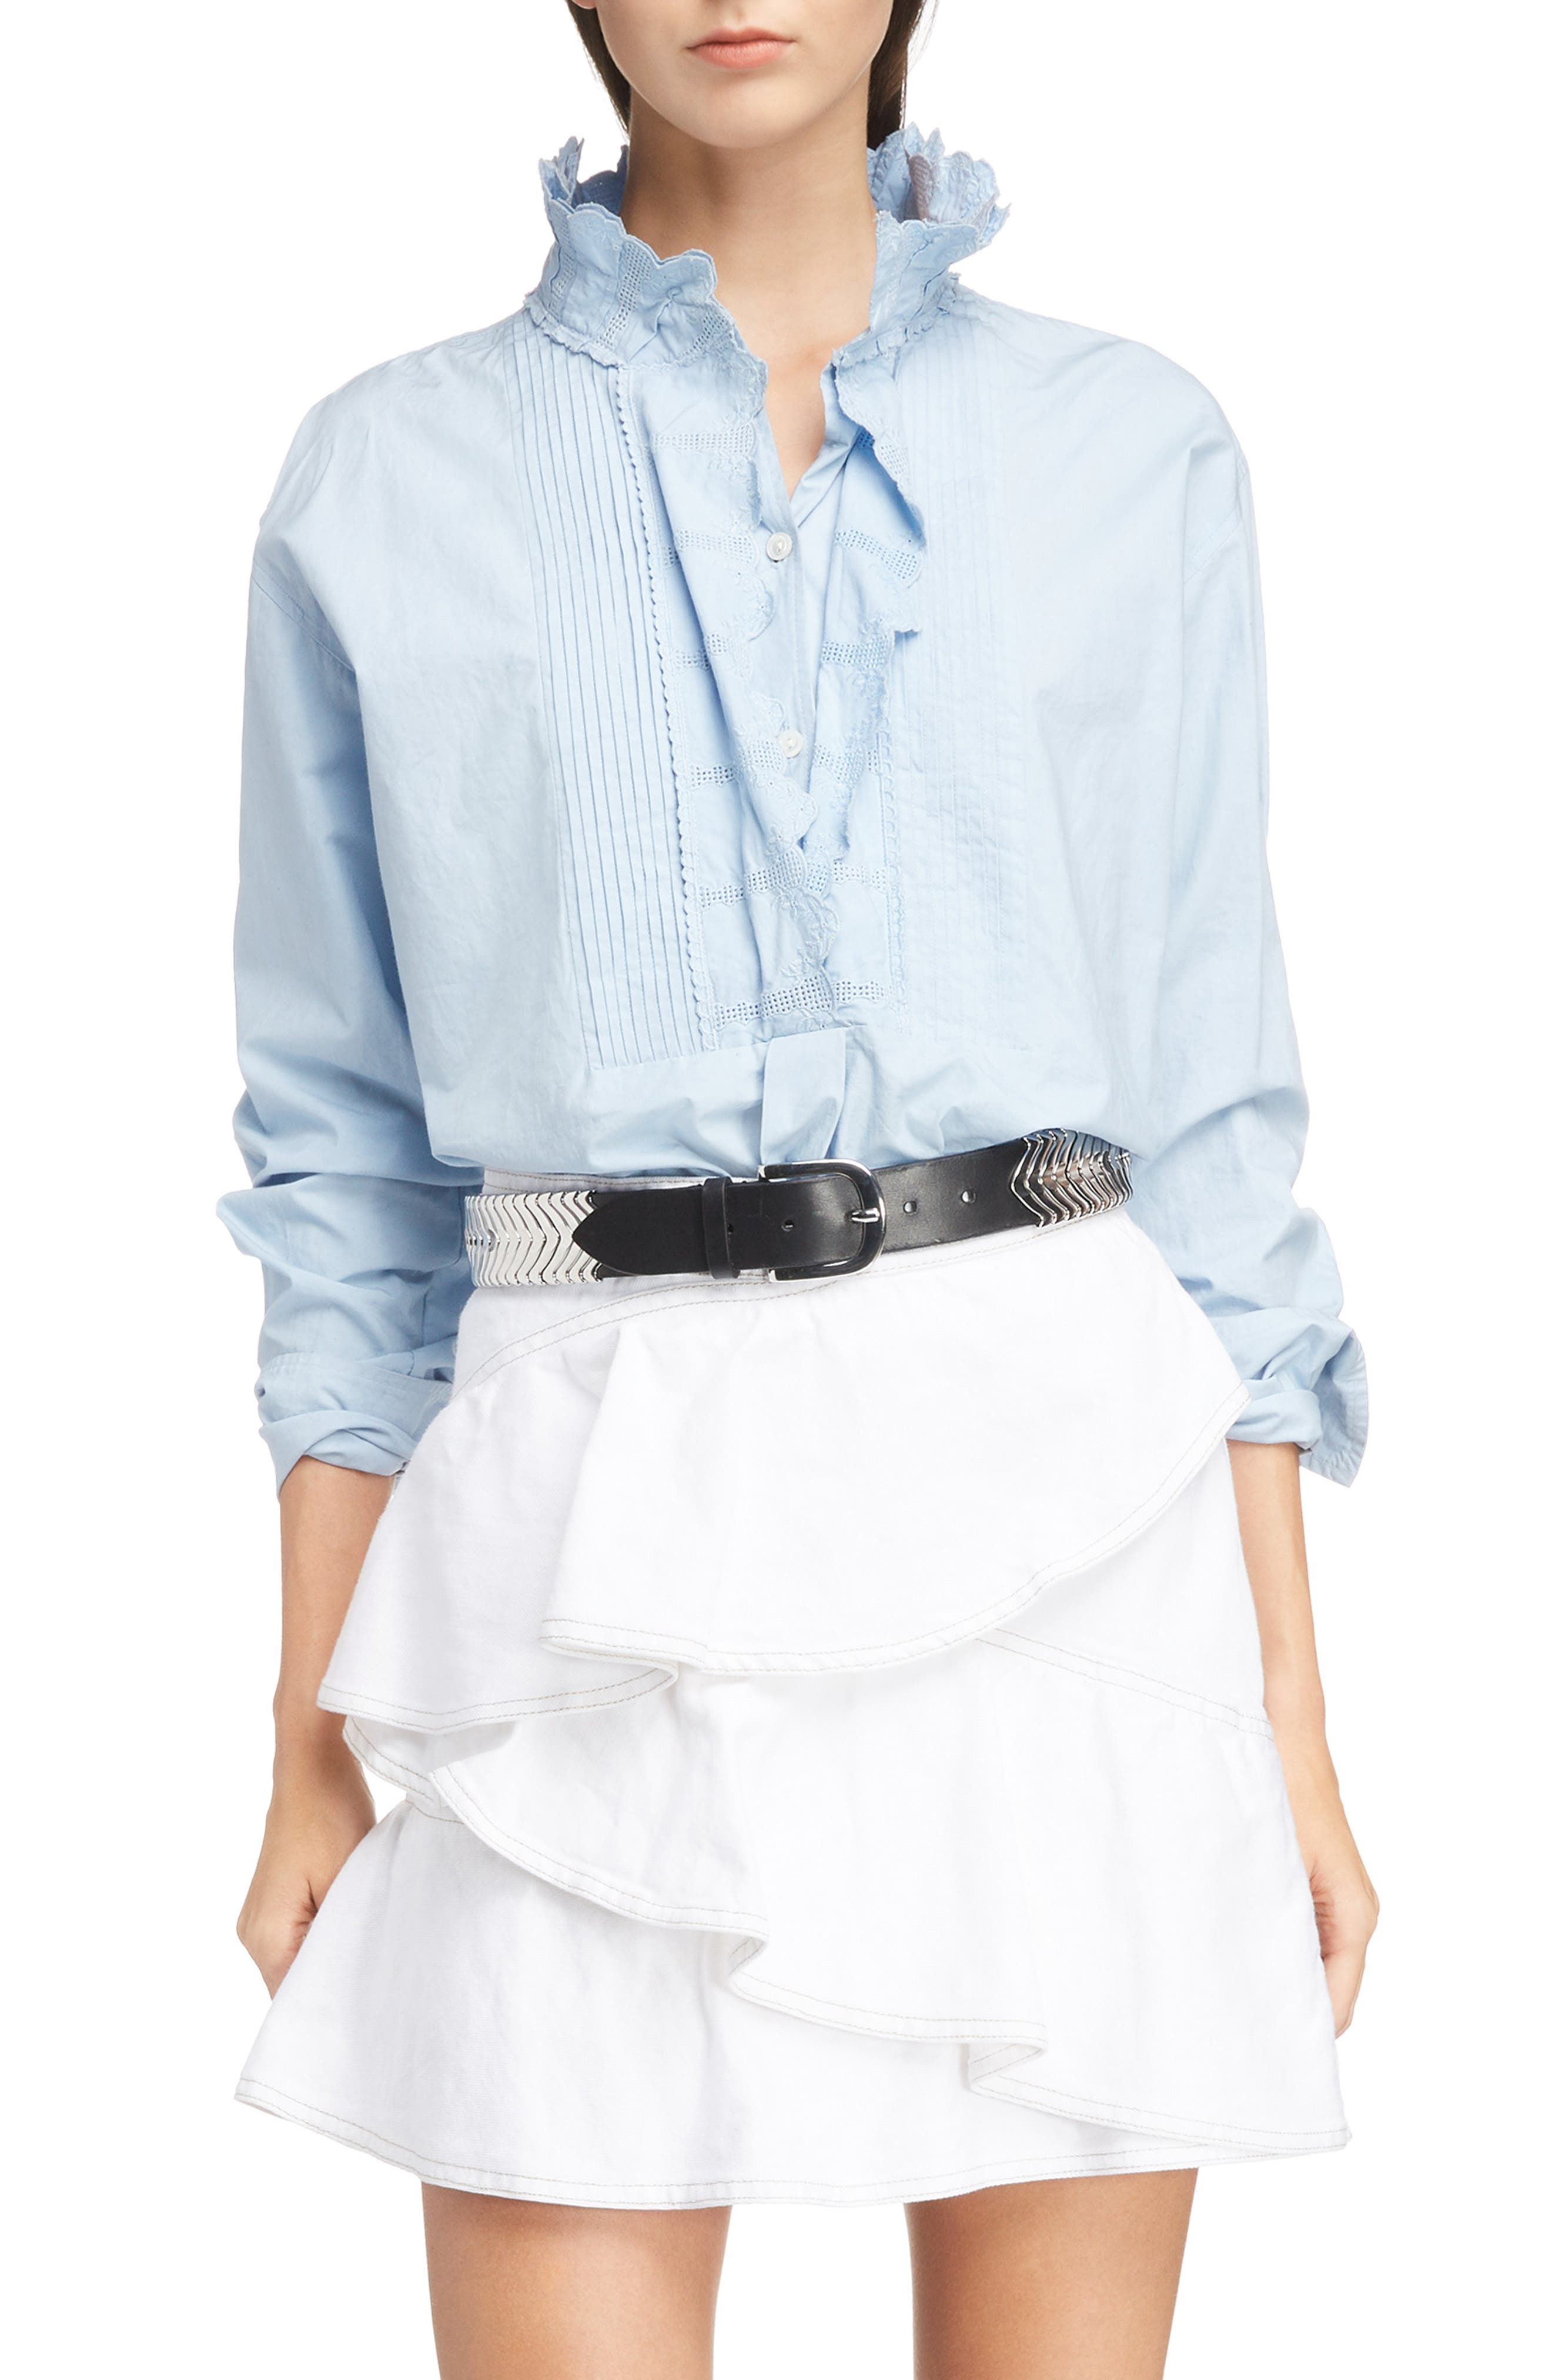 Mora Embroidered Ruffle Neck Blouse,                             Main thumbnail 1, color,                             432